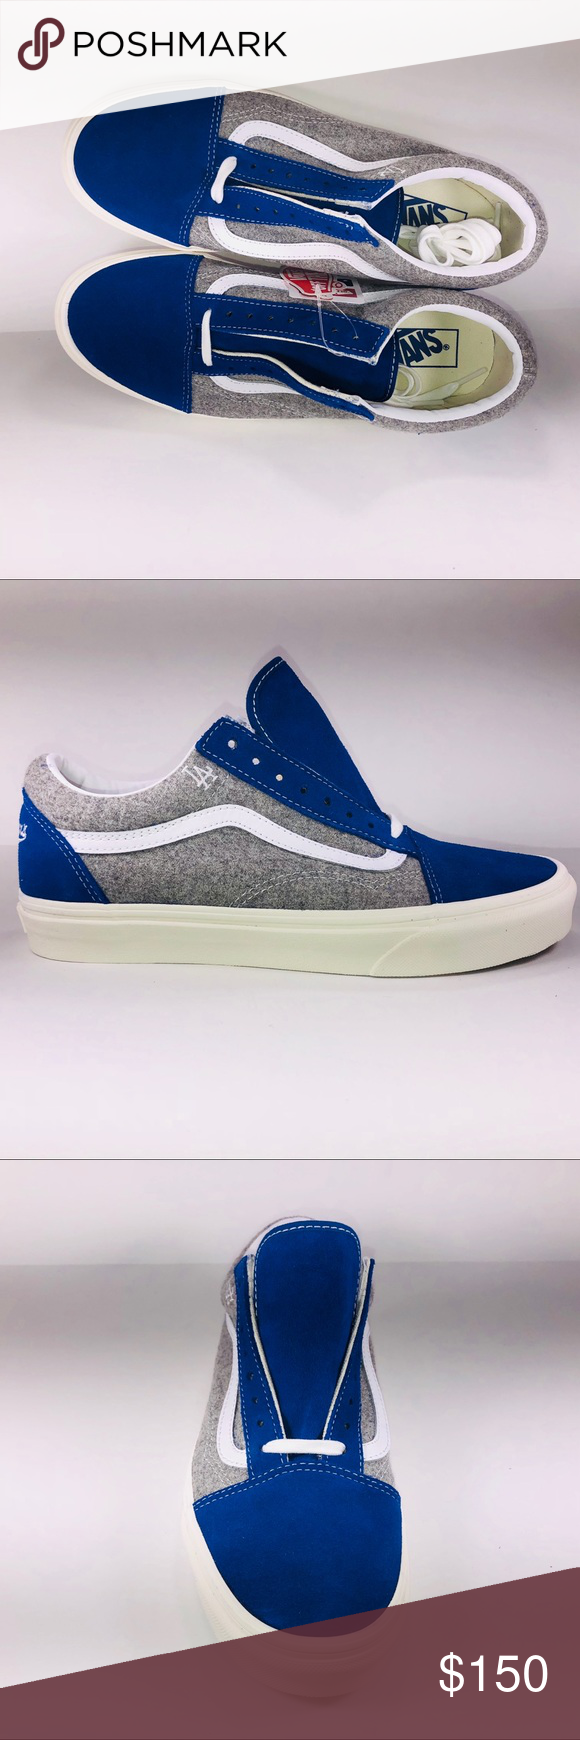 9c80a57da692a0 VANS Old Skool MLB Wool Pack LA Dodgers Blue Shoes New With Damaged Box See  Pictures